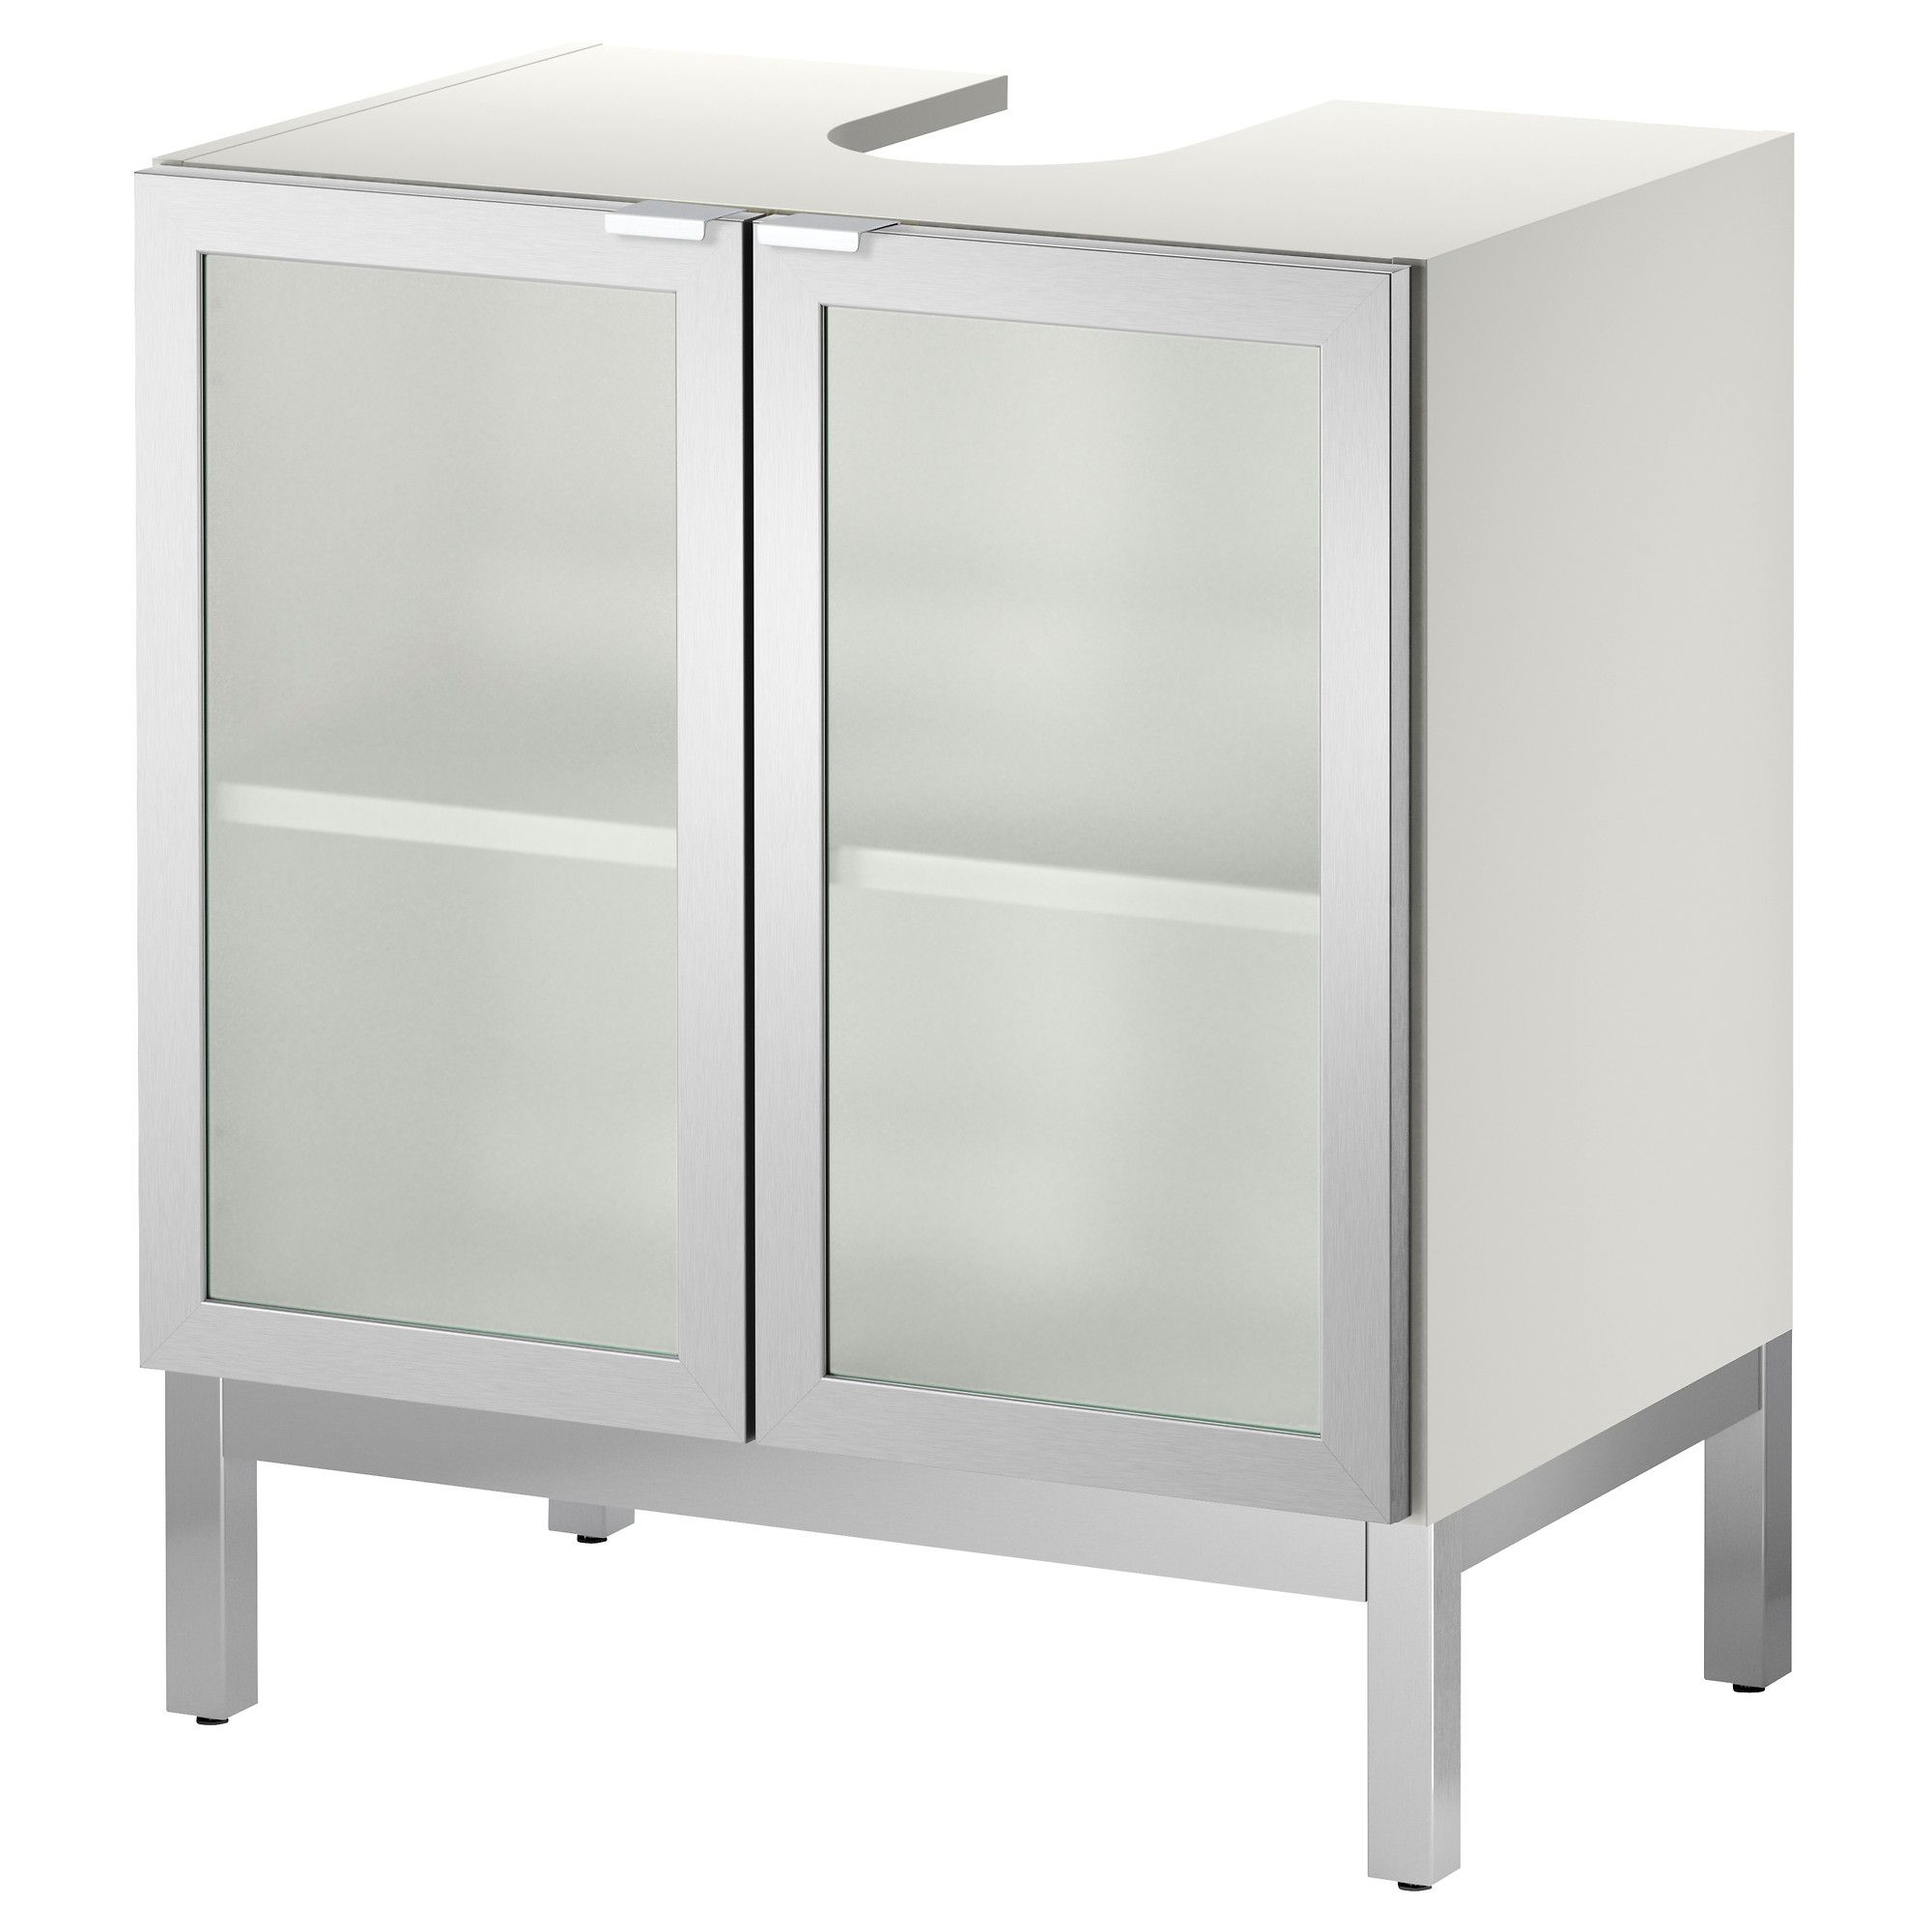 Lill ngen sink base cabinet with 2 door aluminum ikea Bathroom vanity cabinet storage